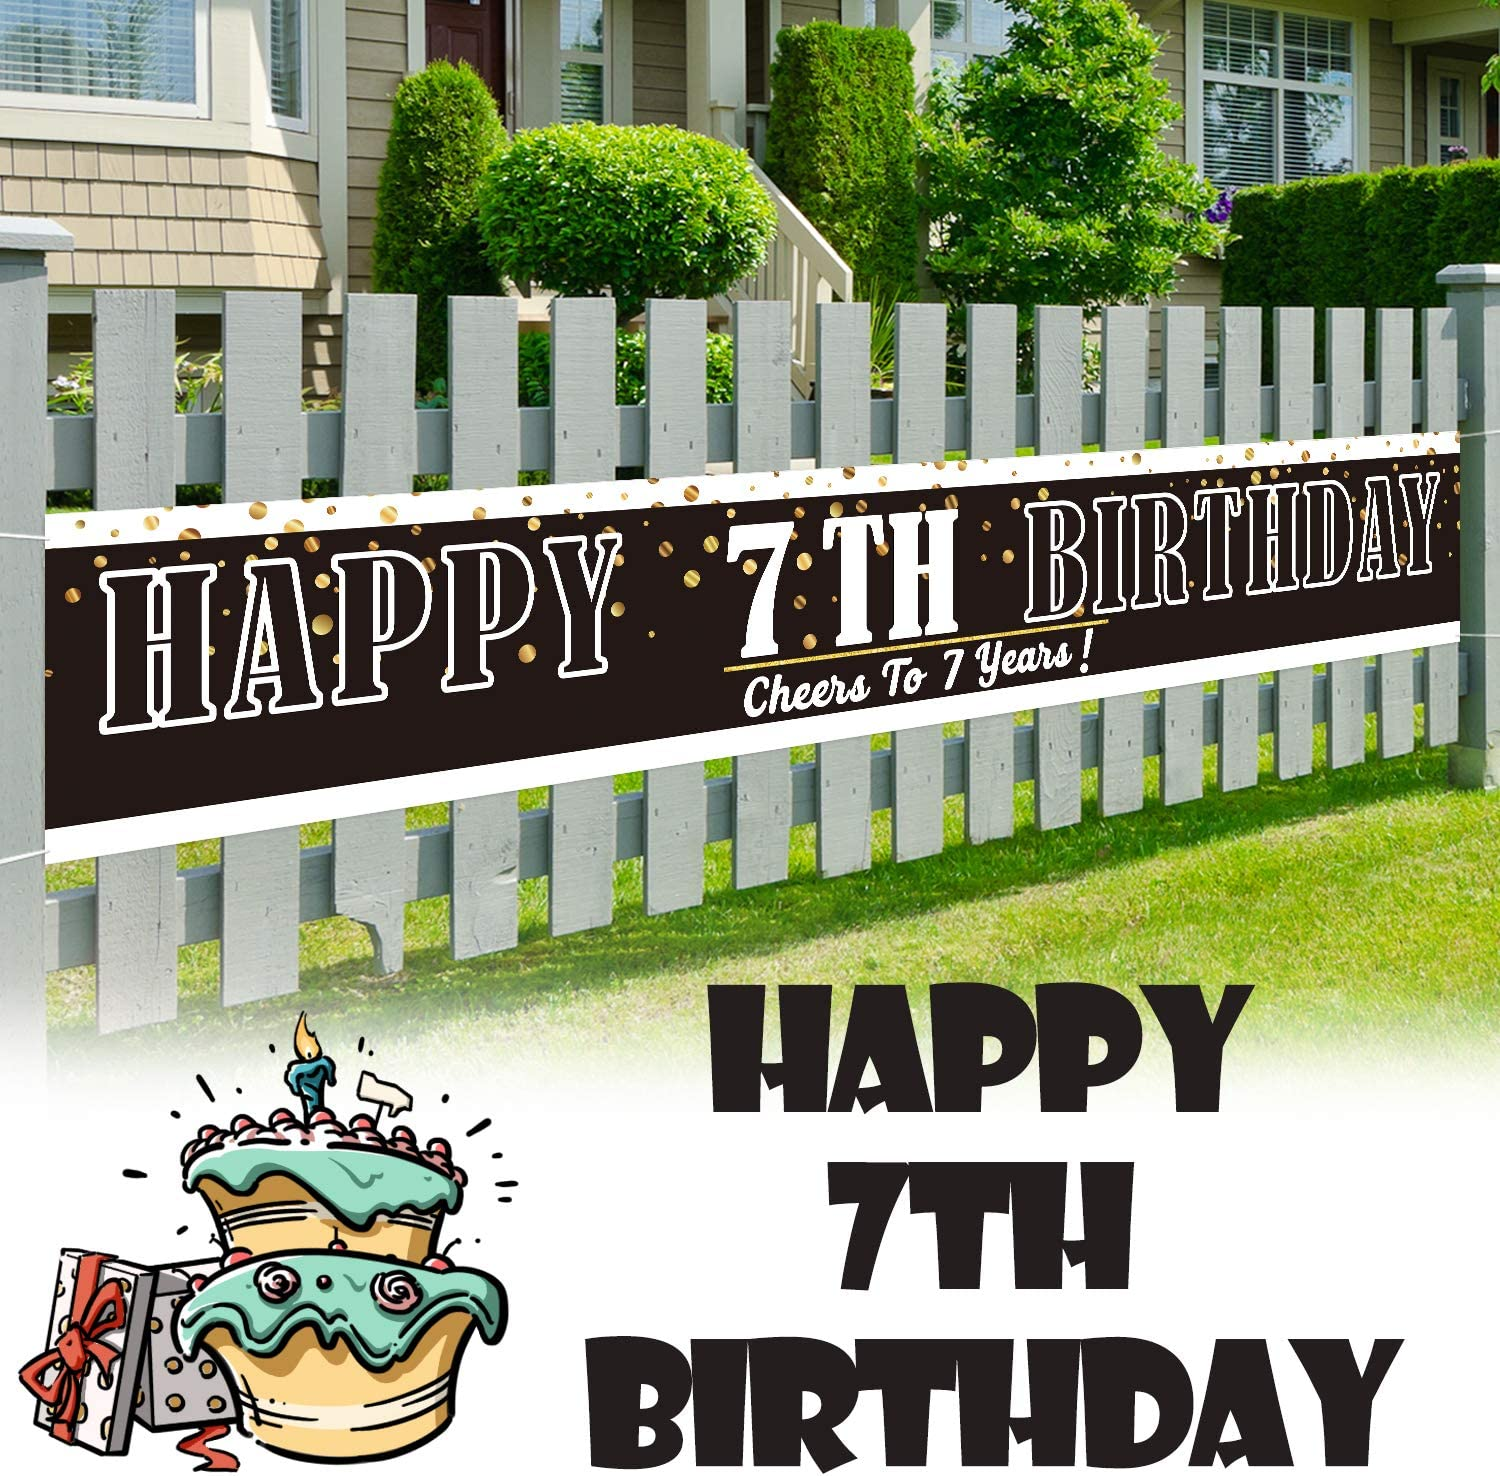 LINGPAR 9.8 x 1.6 ft Large Sign Happy 7th Birthday Banner - Cheers to 7 Years Old Decor